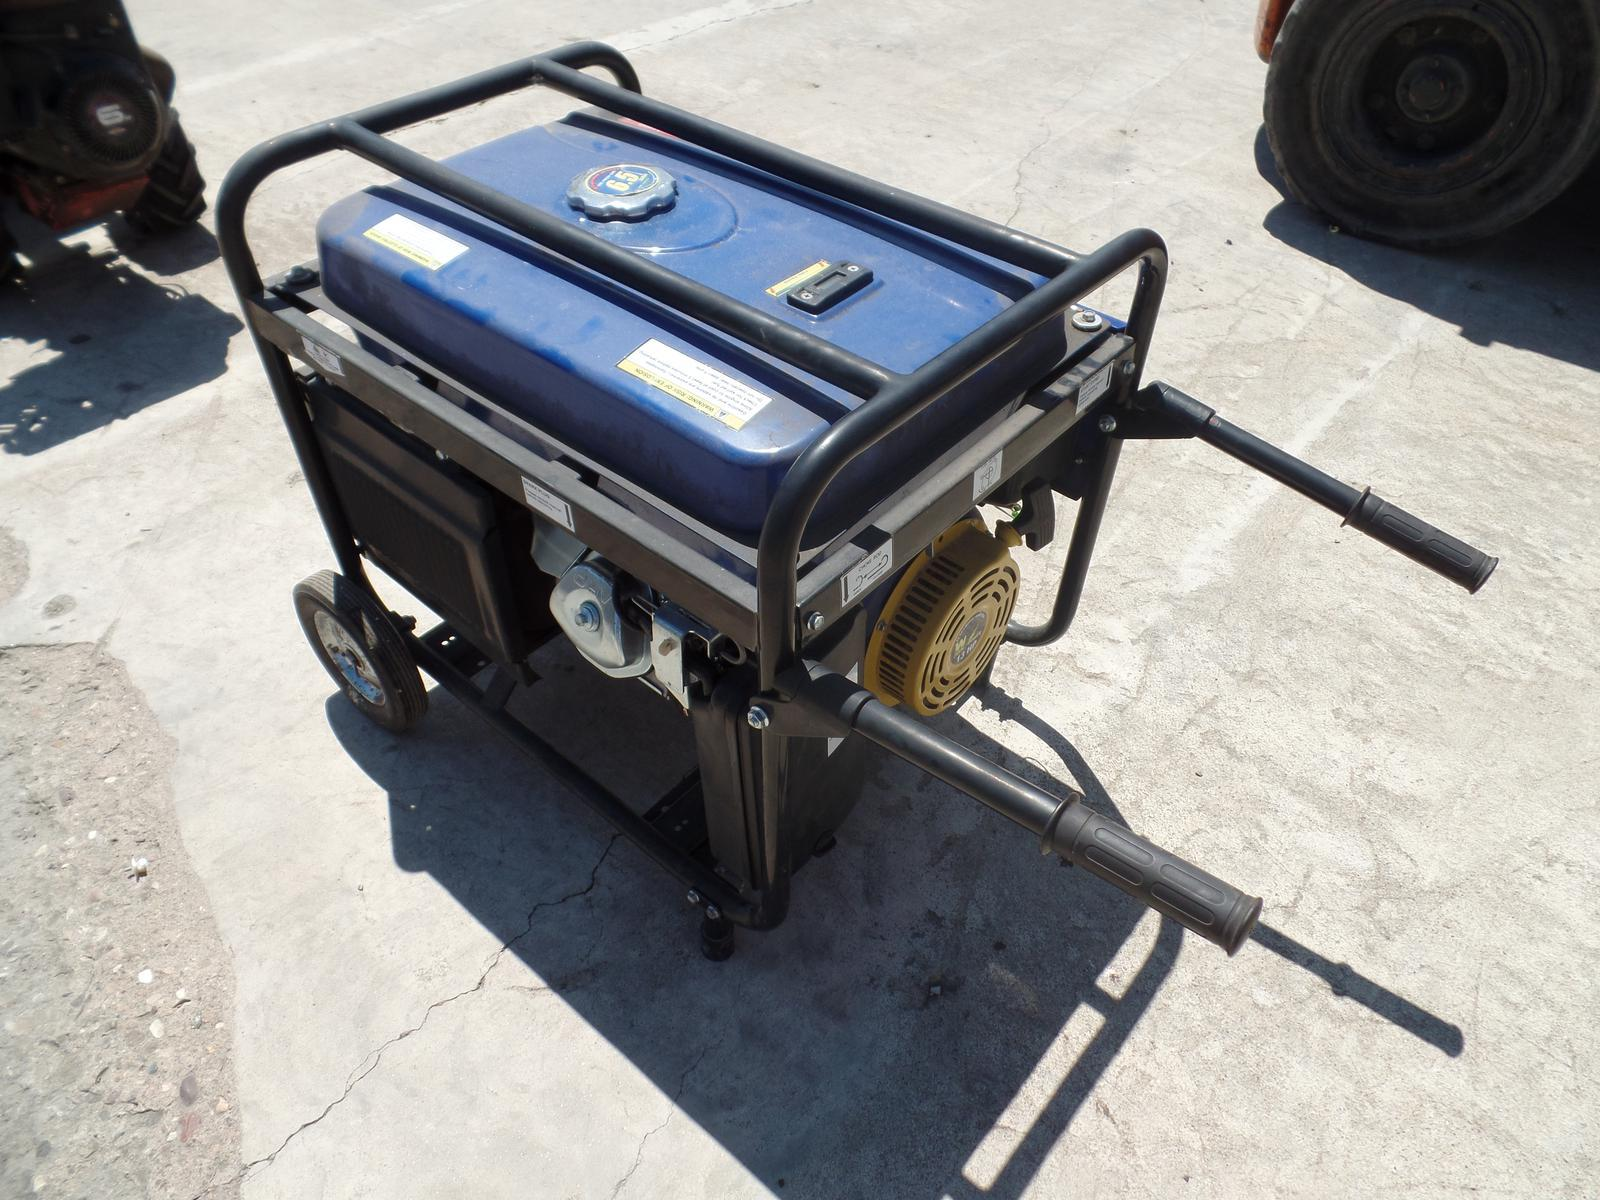 Wen Power 5500 Generator for sale in Biggsville IL